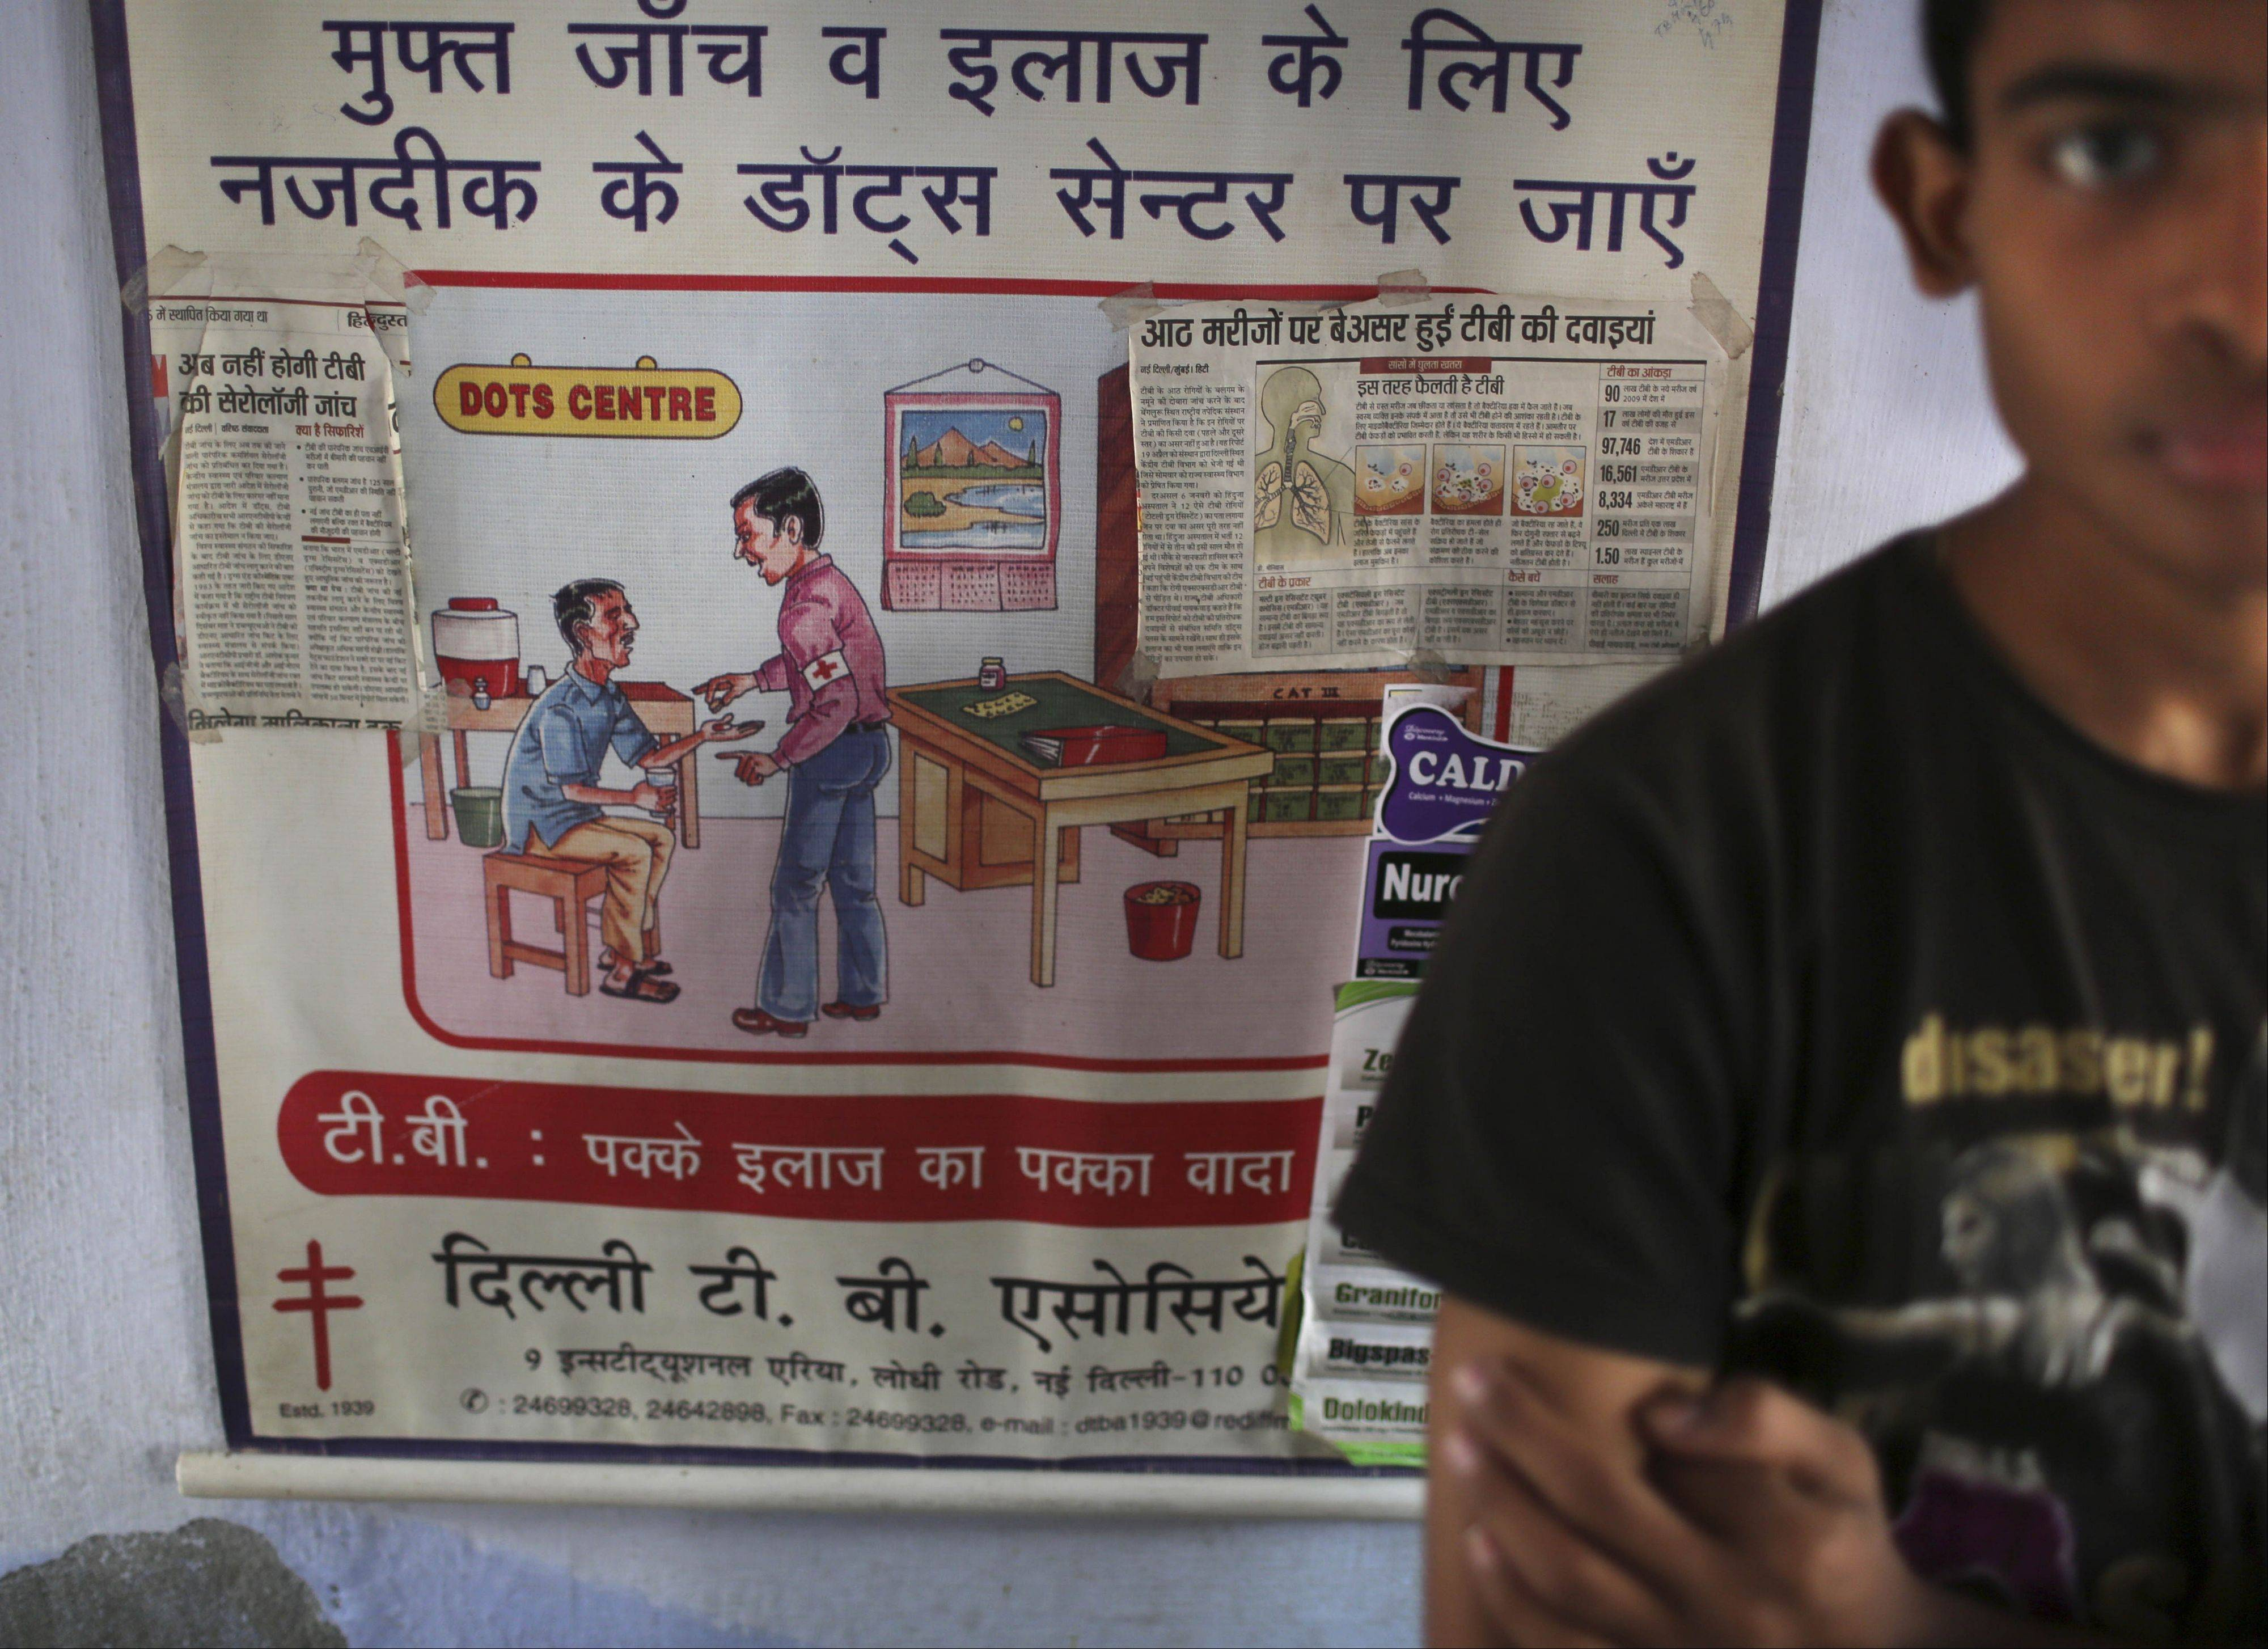 Associated Press/Oct. 22, 2012A teen waits next to a poster at an Operation ASHA program center in New Delhi.